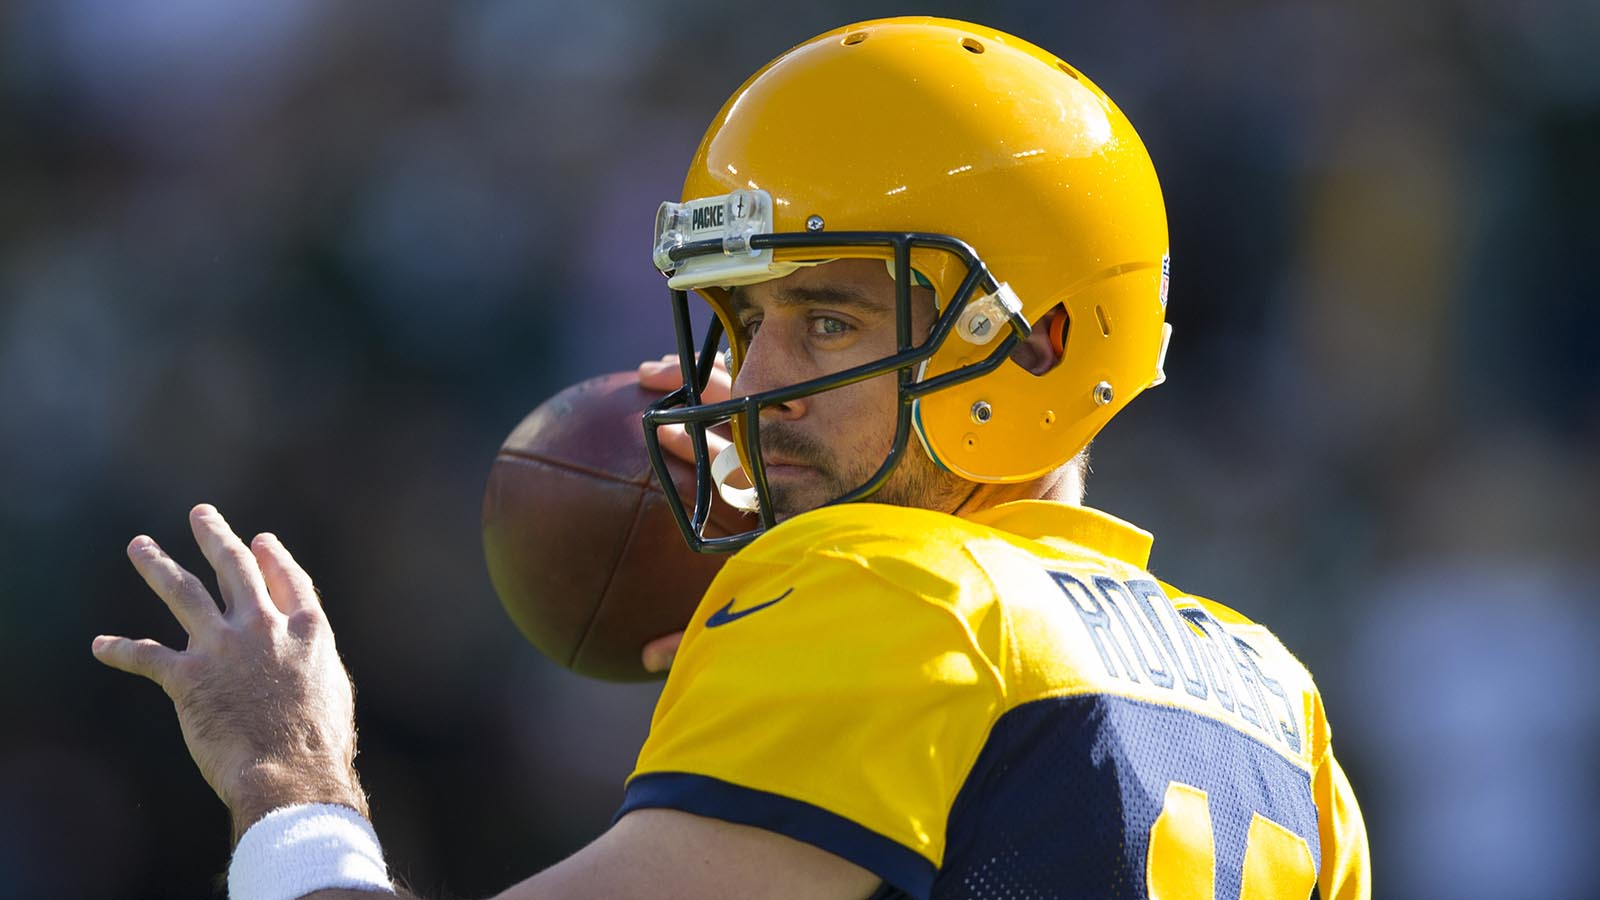 Packers quarterback Rodgers focusing on accuracy